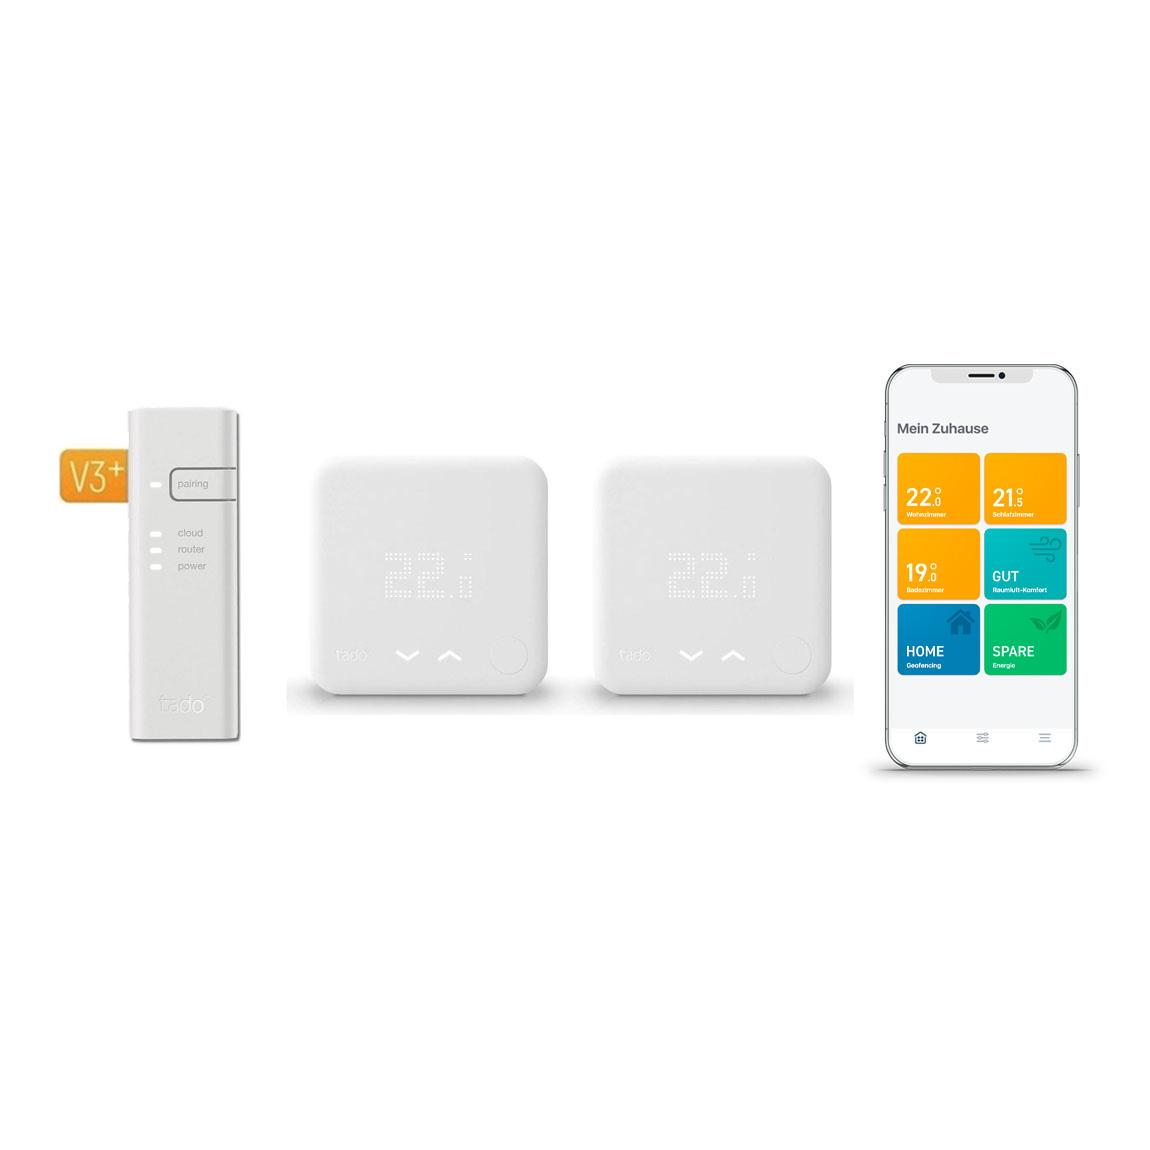 tado° Smartes Thermostat Starter Kit V3+ mit 2 Raumthermostaten & Bridge